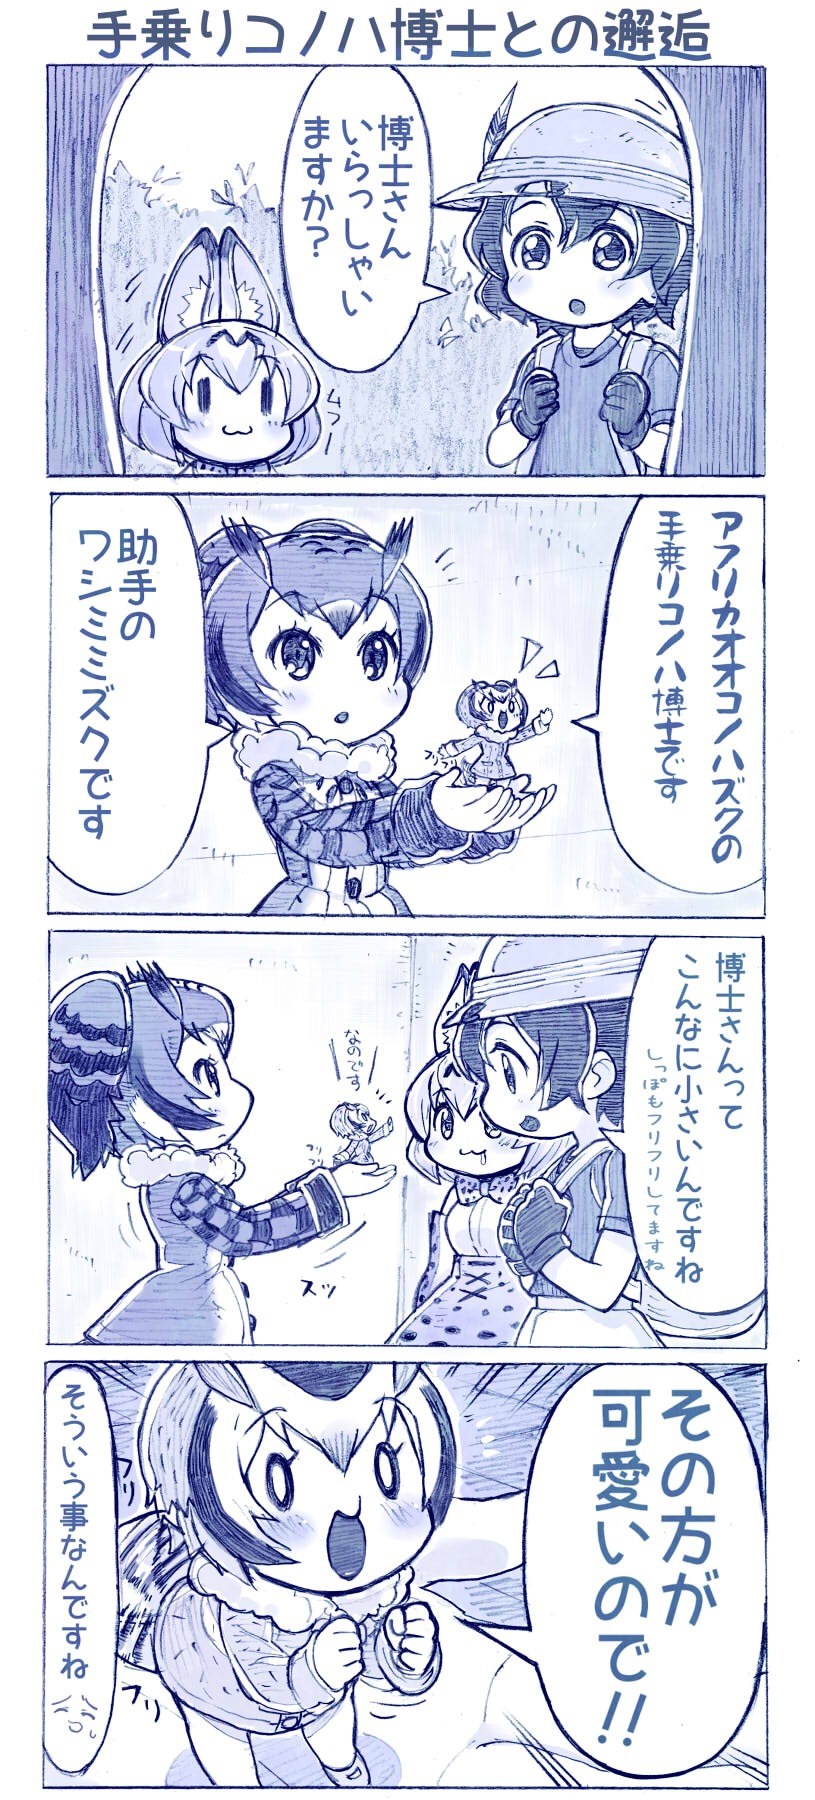 0_0 4koma :3 :d :o animal_ears backpack bag blue blush boots bucket_hat comic commentary_request day elbow_gloves emphasis_lines eurasian_eagle_owl_(kemono_friends) eyebrows_visible_through_hair fur_trim gloves hair_between_eyes hat hat_feather head_wings high-waist_skirt highres holding kaban_(kemono_friends) kemono_friends long_sleeves minigirl monochrome northern_white-faced_owl_(kemono_friends) open_mouth outdoors parted_lips sakino_shingetsu saliva serval_(kemono_friends) serval_ears shirt short_hair short_sleeves skirt sleeveless sleeveless_shirt smile standing translation_request ||_||